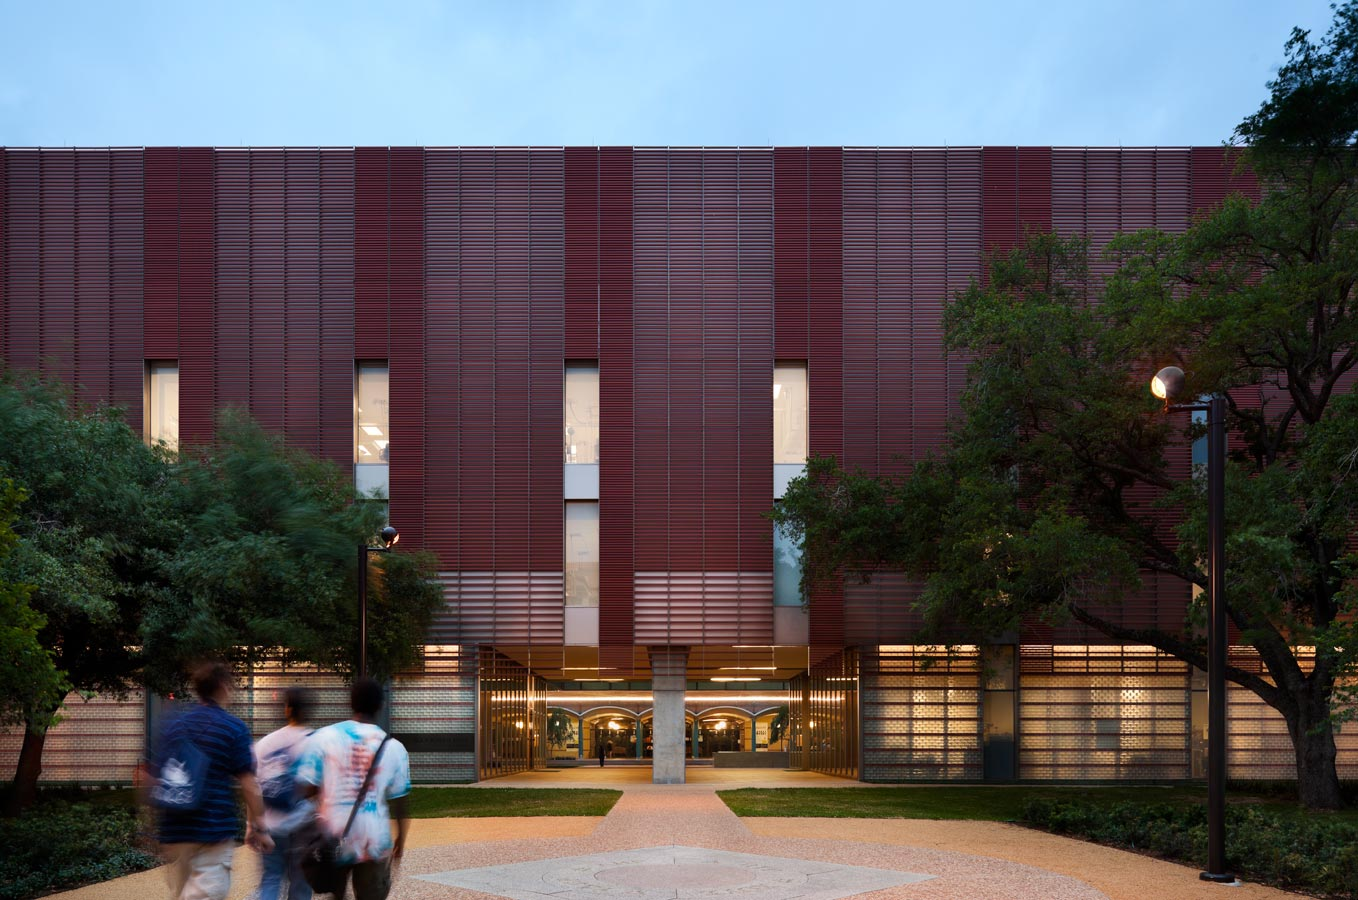 <p>Horizontal terra-cotta baguettes over aluminum rain screen panels protect the labs from solar exposure while regulating natural light and privacy. This south facade completes the courtyard for George R. Brown Hall, and creates a portal to the Science Quad. <br><small>© Peter Aaron/OTTO</small></p>